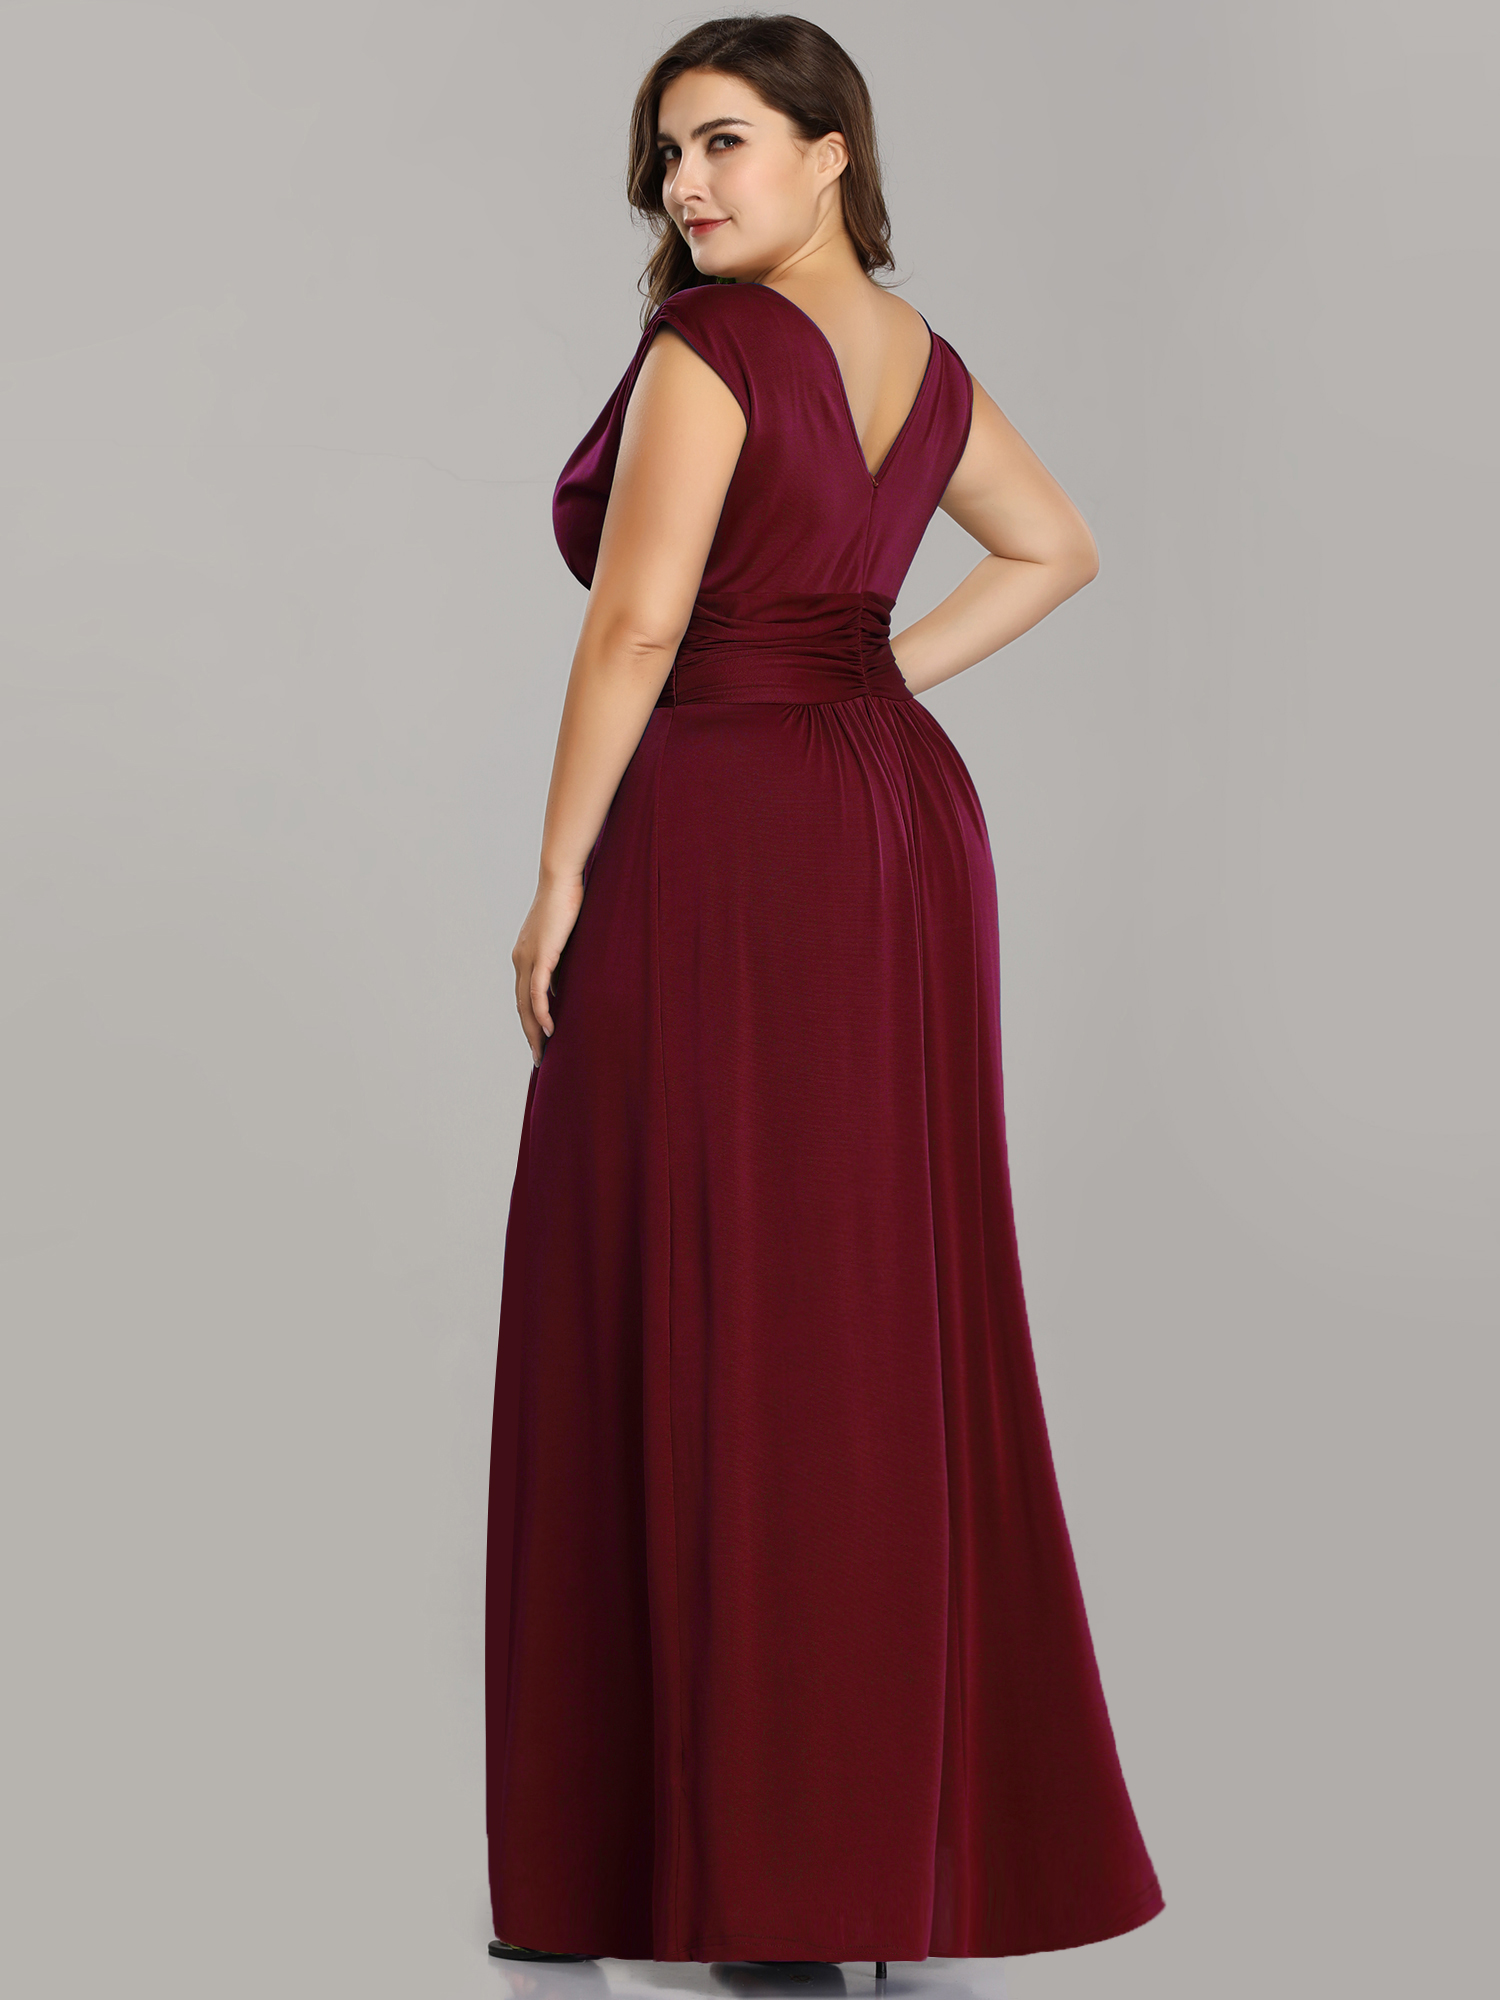 a7ed6cdfc30 Burgundy Plus Size Evening Dress - Gomes Weine AG